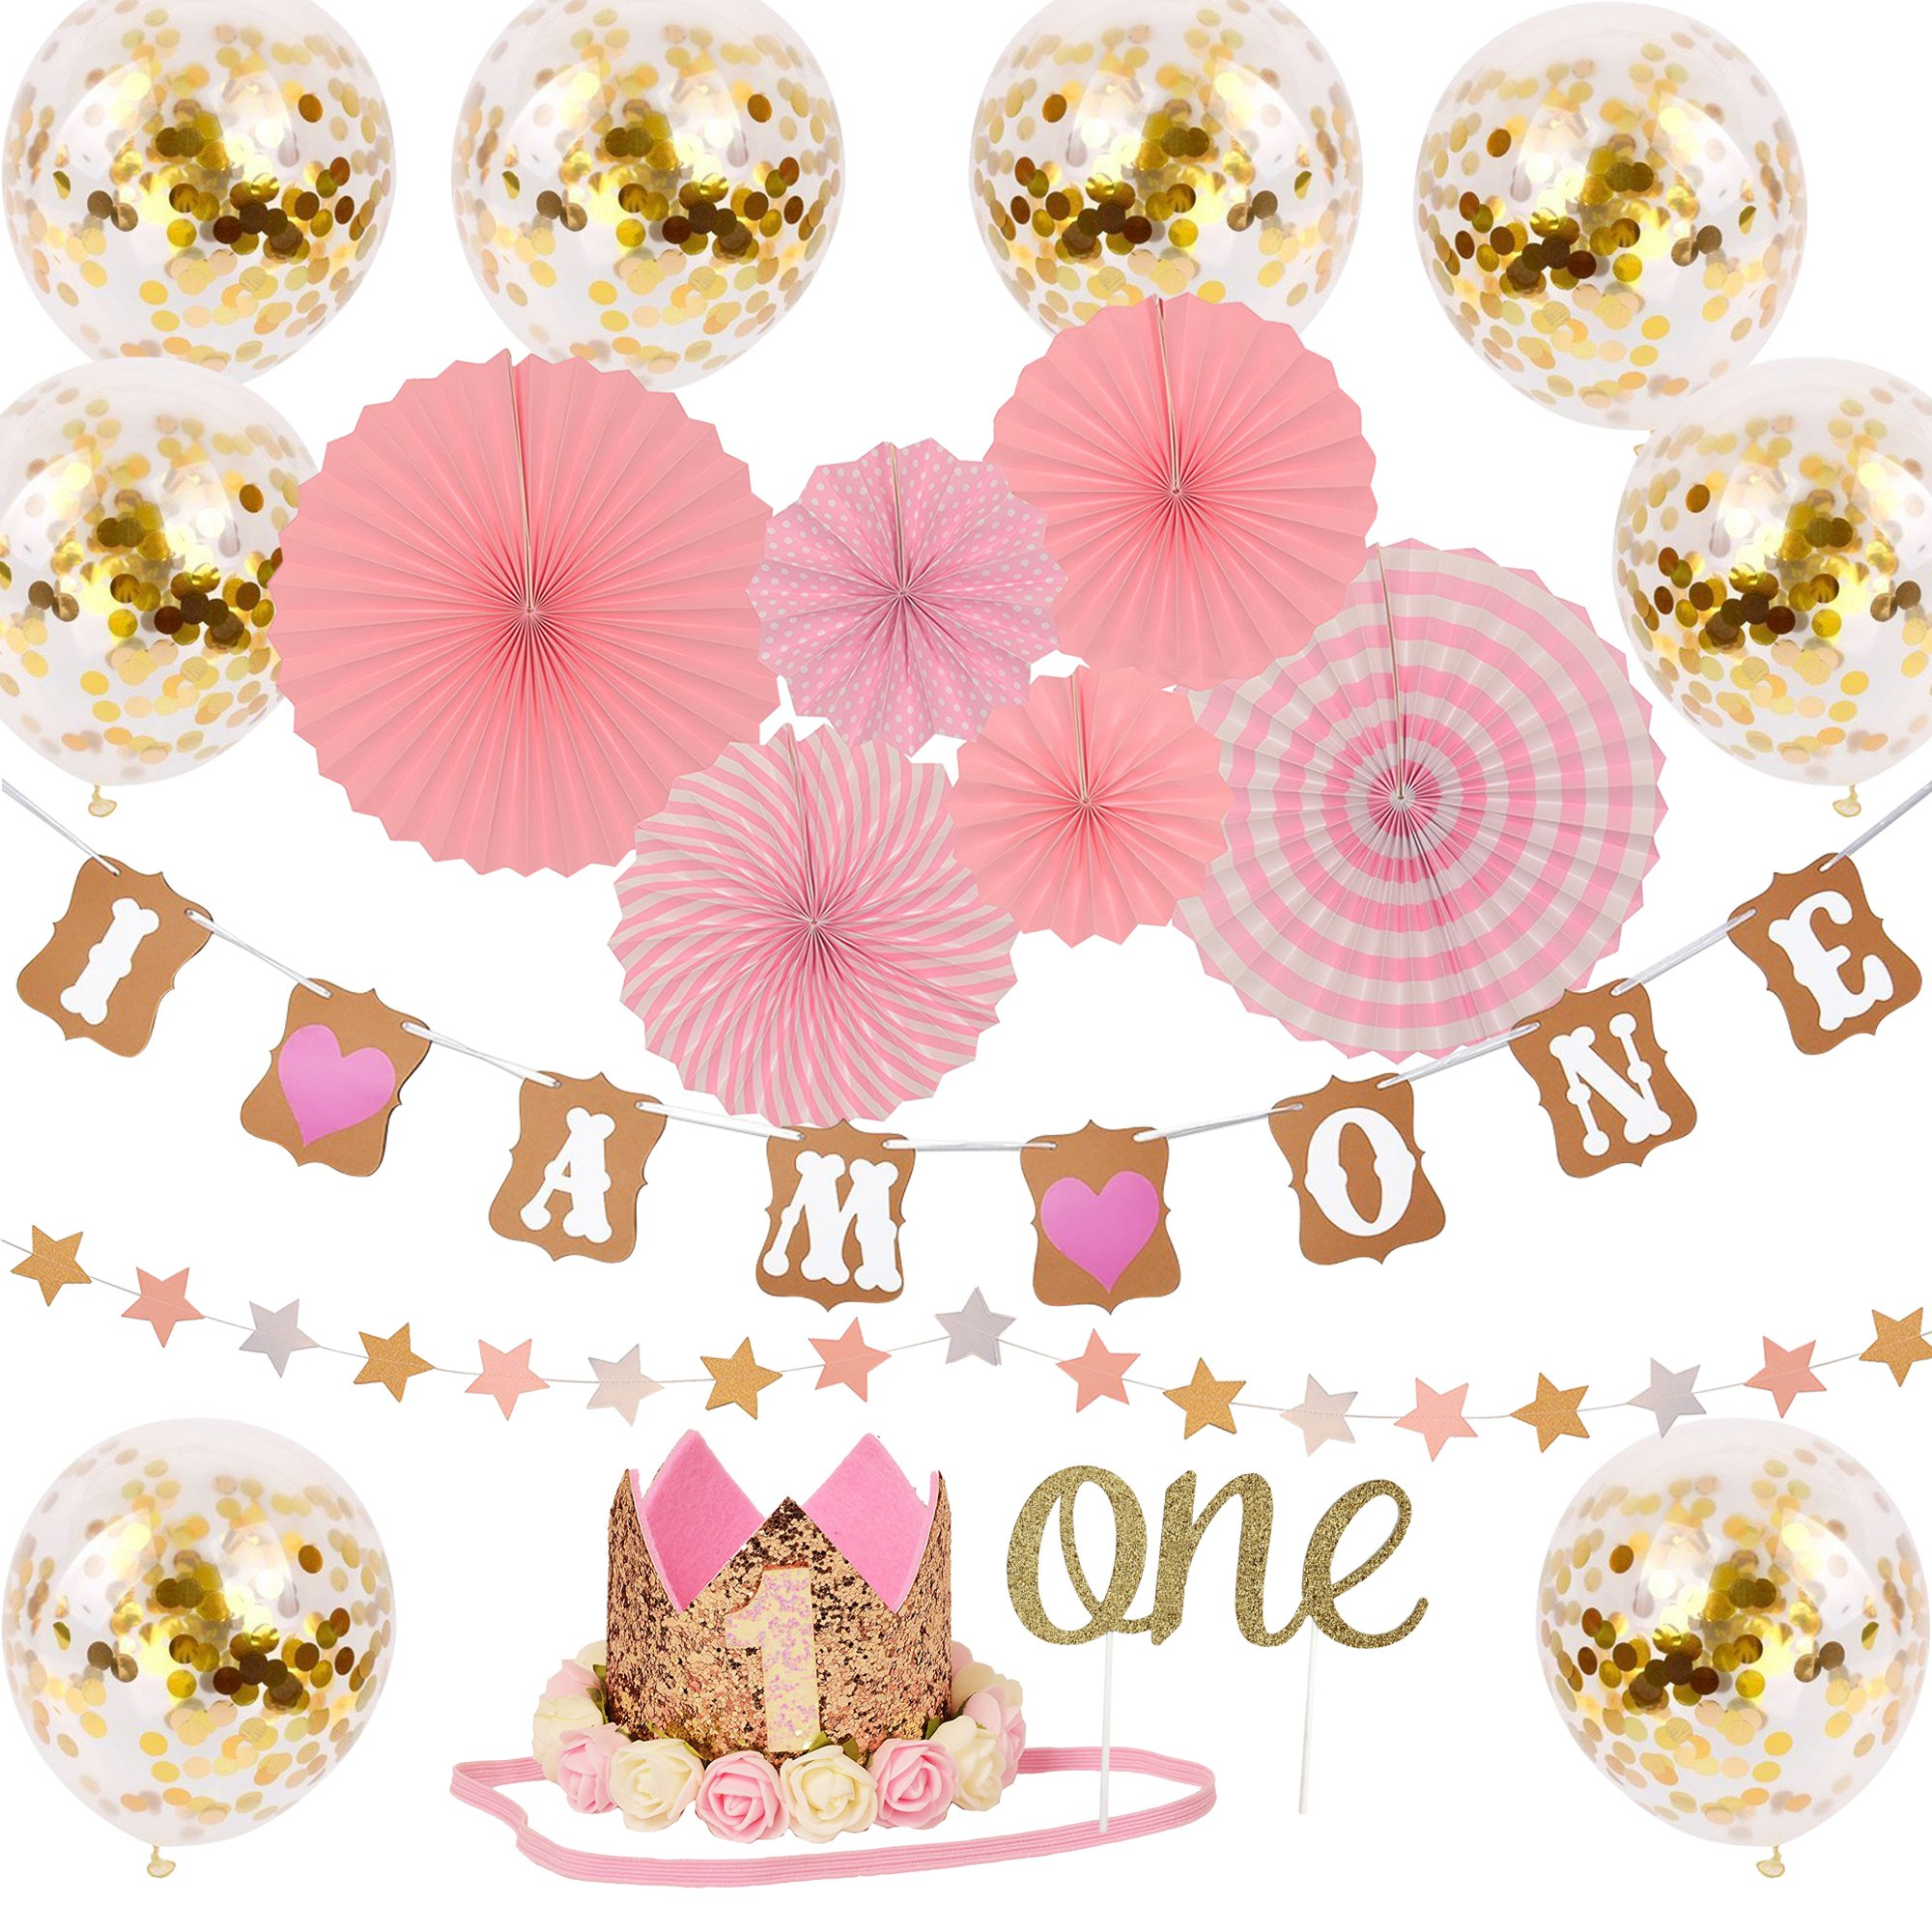 One Year Birthday Decorations Kit For Princess Baby Girl - 'I AM ONE' Banner | Golden Crown Hat | 'ONE' Cake Topper | Pink Hanging Paper Fan | Pink Paper Garland | 8 Ballon - 18 pcs Bundle